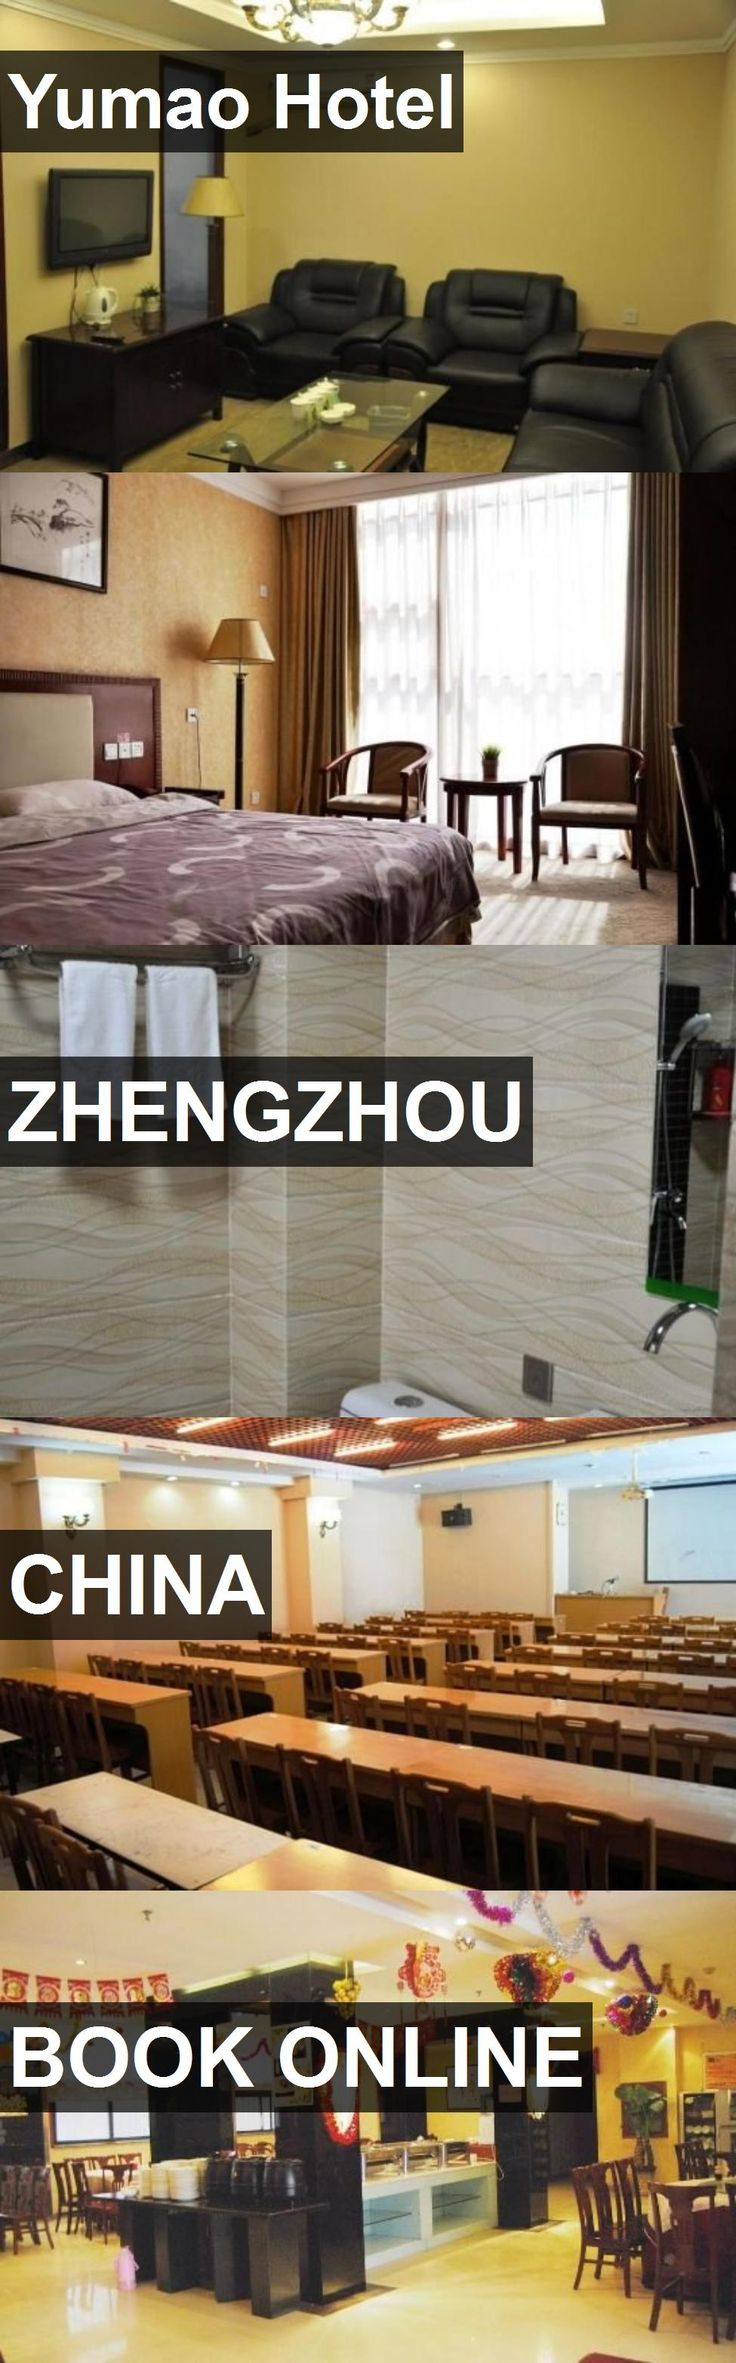 Yumao Hotel in Zhengzhou, China. For more information, photos, reviews and best prices please follow the link. #China #Zhengzhou #travel #vacation #hotel